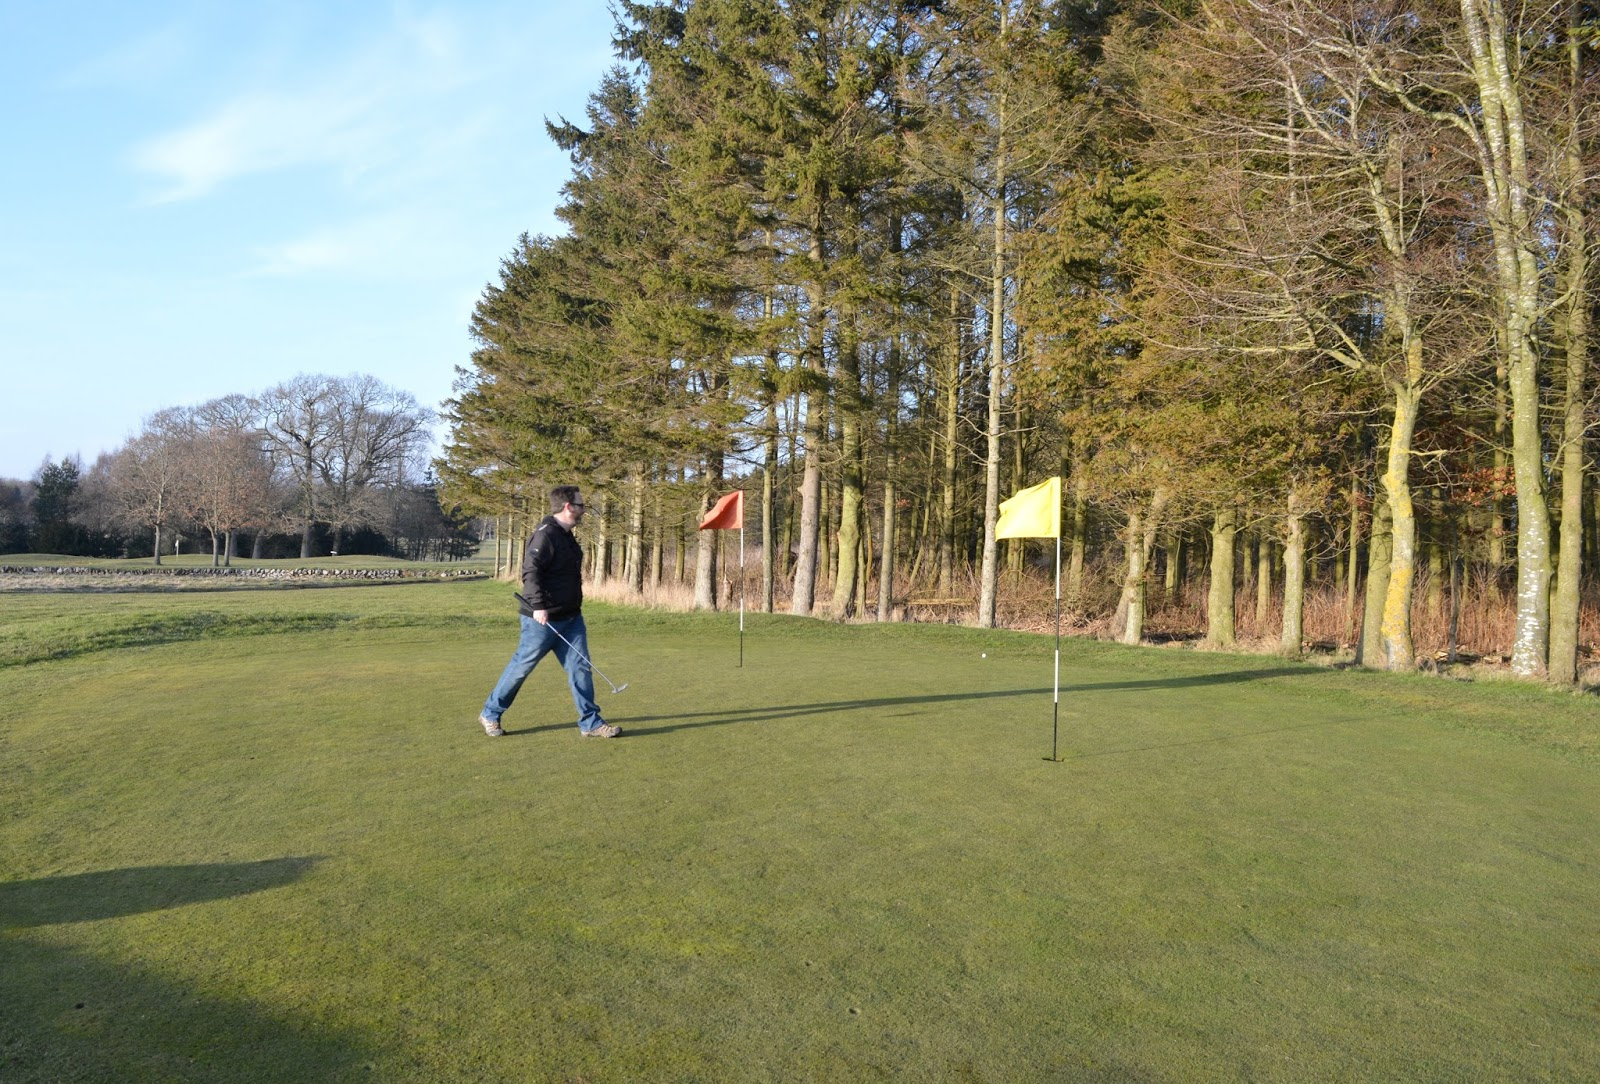 Golf at Matfen Hall - Par 3